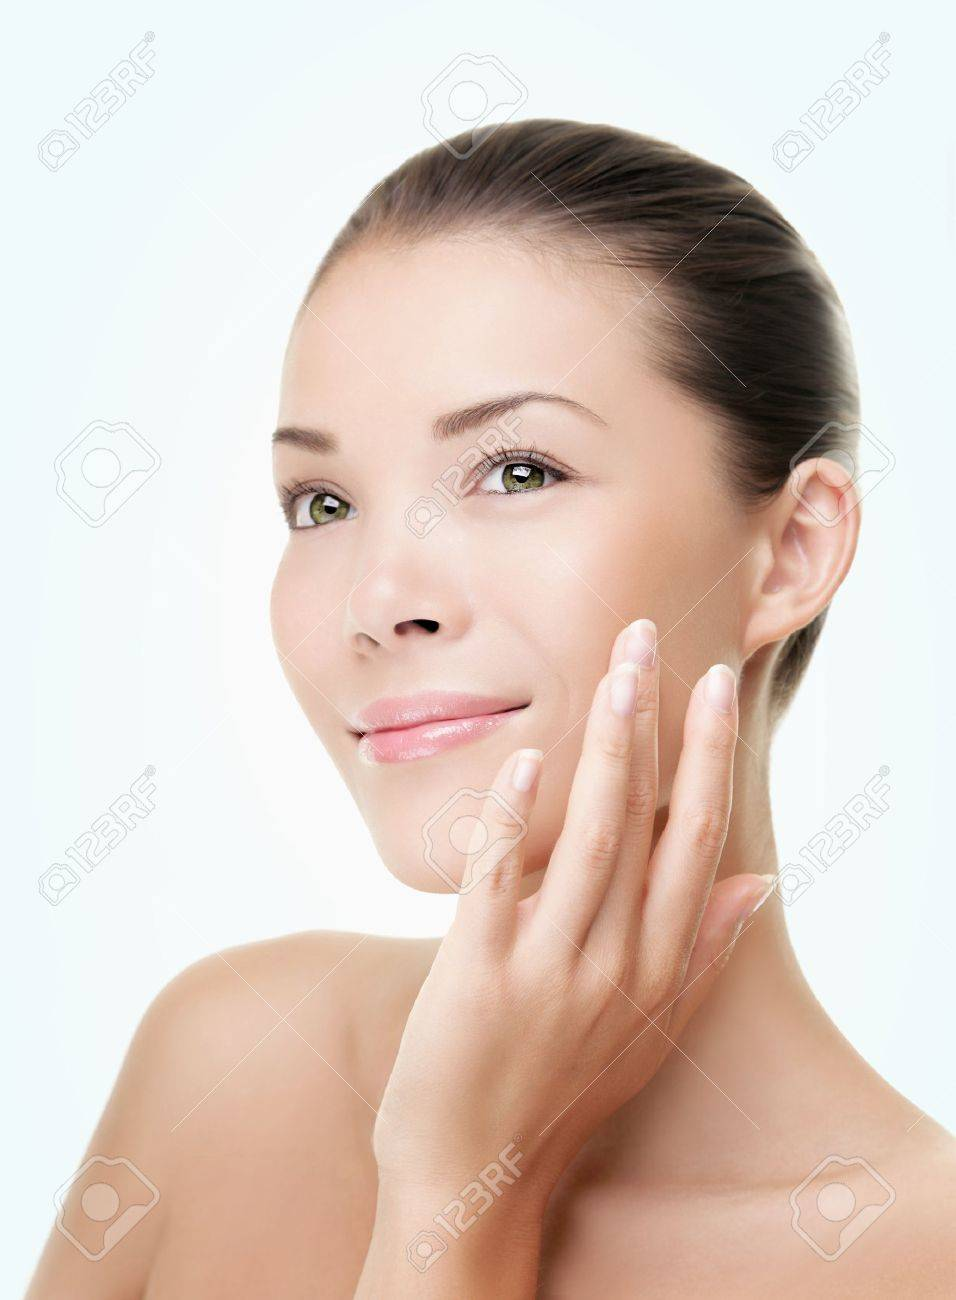 Skin care beauty woman. Beauty woman smiling applying cream. Beauty portrait of beautiful Asian / Caucasian female model isolated on light blue background looking at copy space. Stock Photo - 9952938